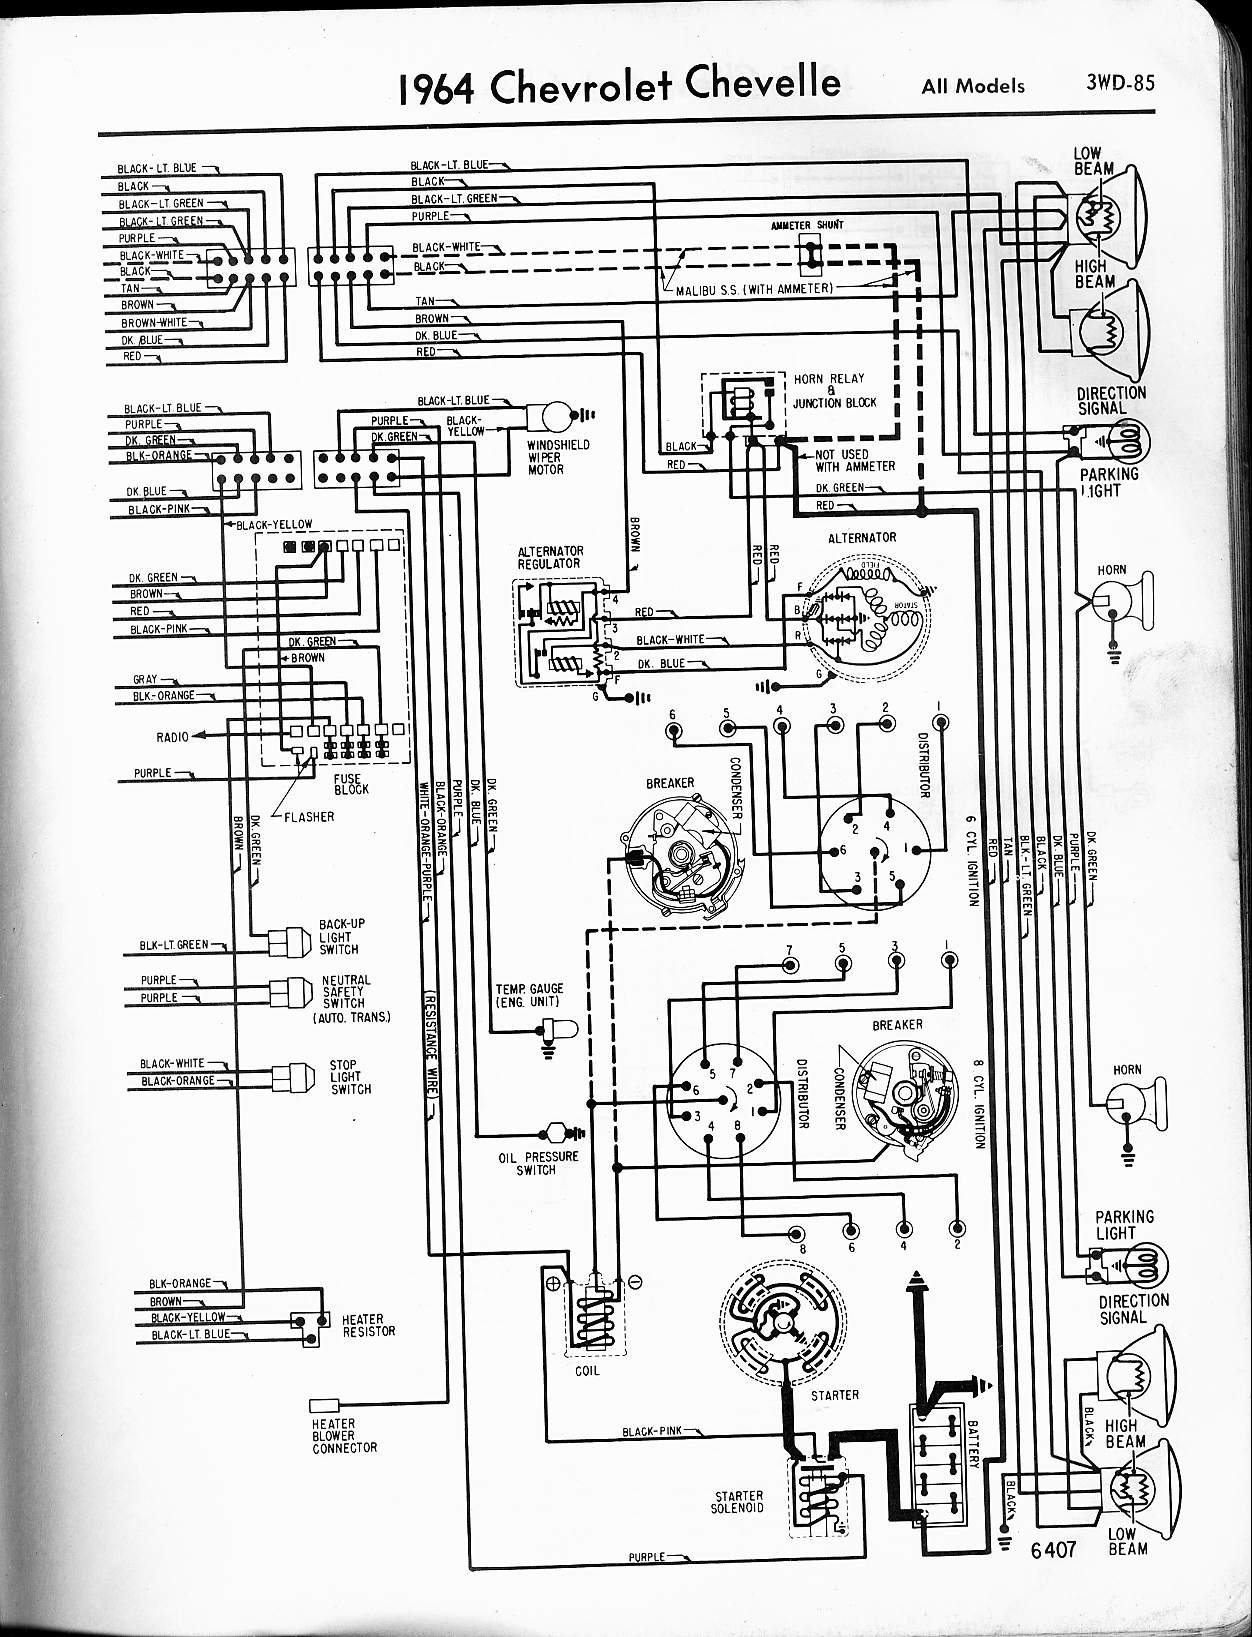 [SCHEMATICS_48YU]  4EEC0F 1964 Mustang Tail Light Wiring Diagram | Wiring Library | 1966 Chevy Truck Tail Light Wiring Diagram |  | Wiring Library